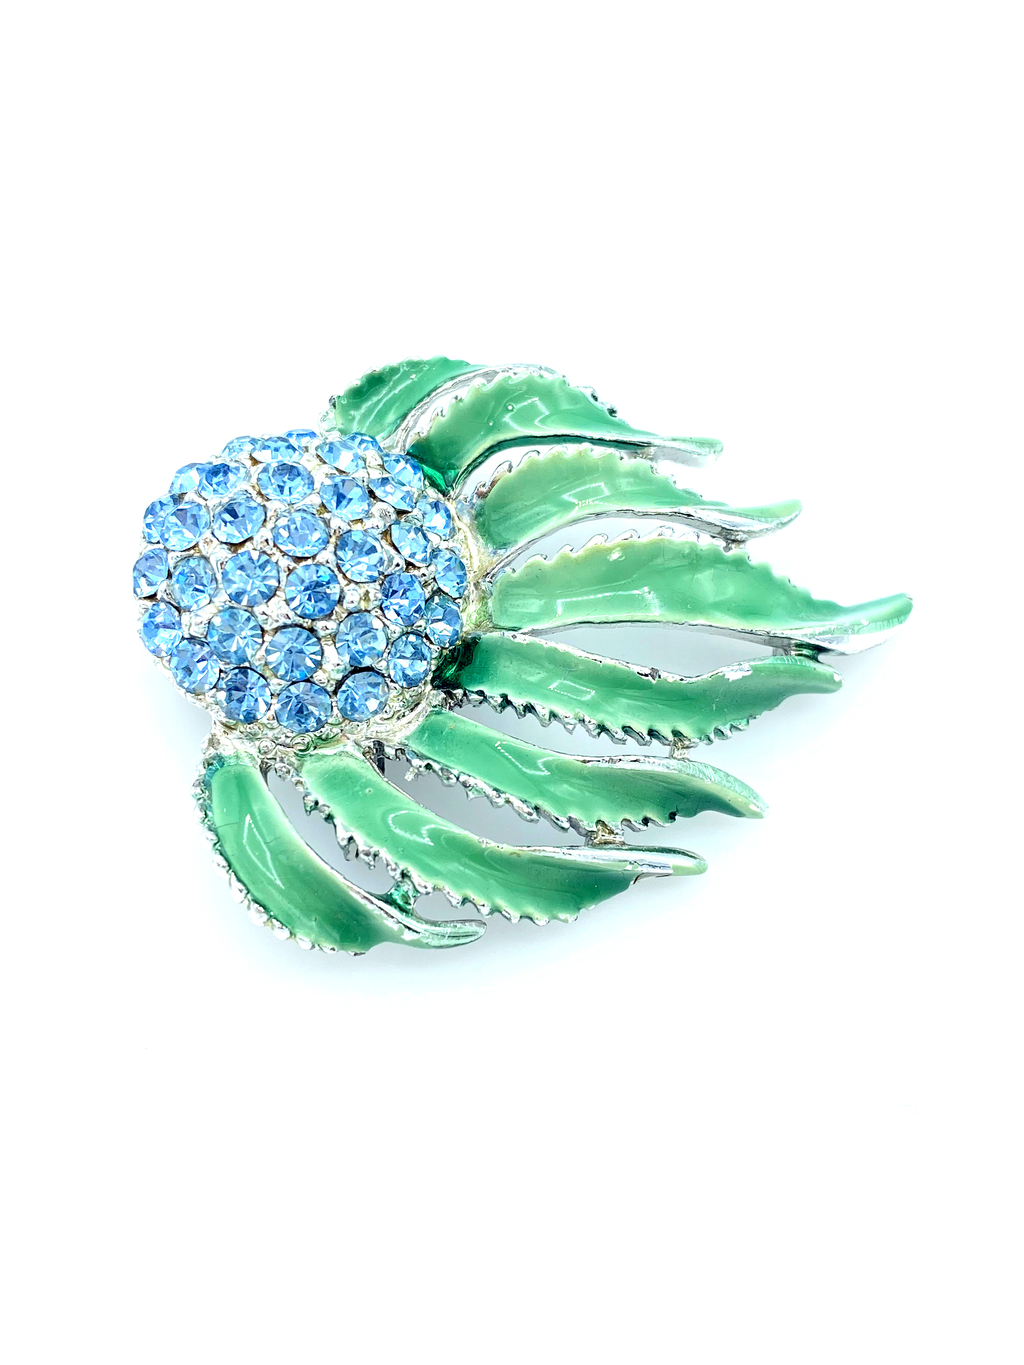 Light Blue Rhinestone & Green Enamel Floral Vintage Brooch-Sustainable Fashion with Vintage Style-Trending Designer Fashion-24 Wishes